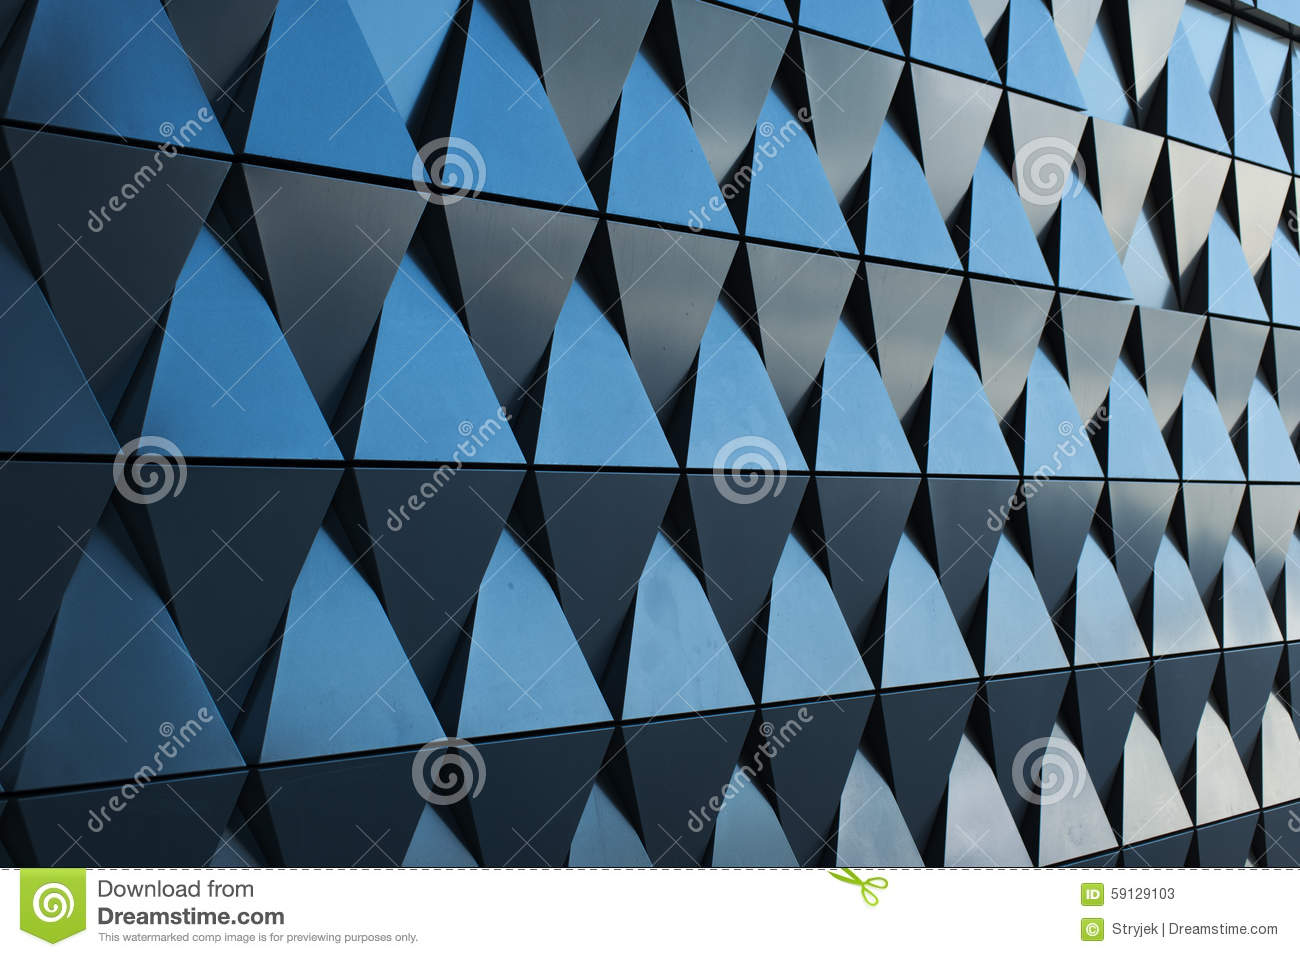 triangular shaped wall design texture stock photos - Architectural Wall Design